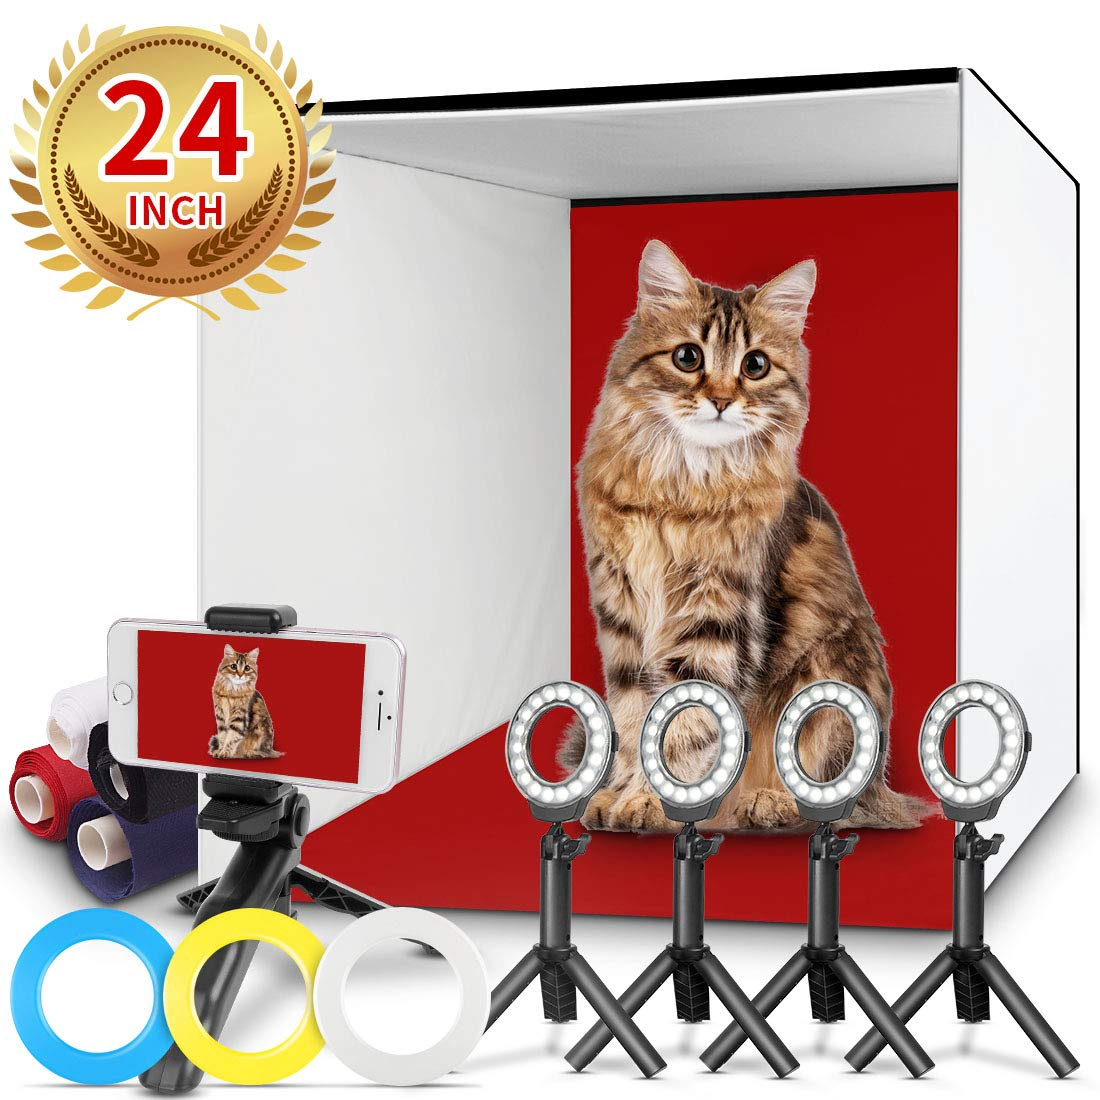 Photo Studio Box, FOSITAN 24x24 inches Table Top Photo Light Box Continous Lighting Kit with 5 Tripods, 4 LED Ring Lights, 4 Color Backdrops & a Cell Phone Holder for Photography by FOSITAN